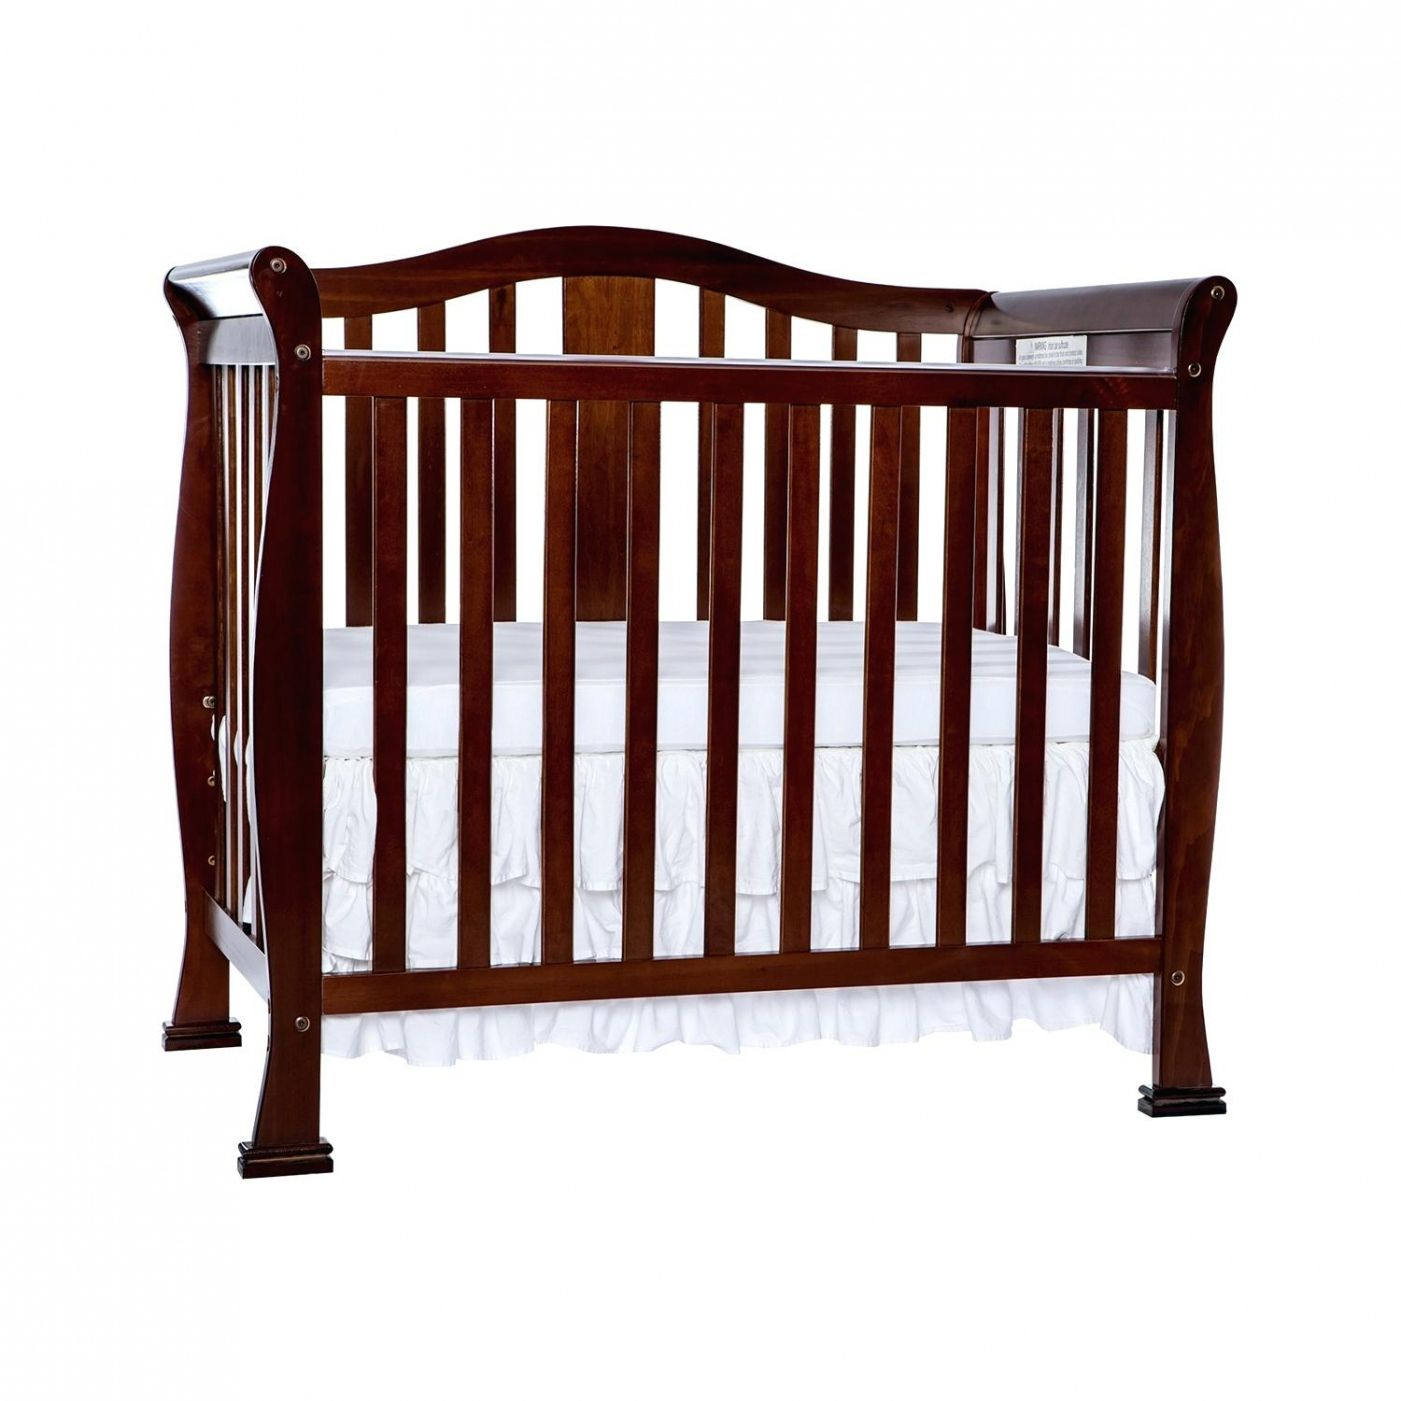 30 baby dream furniture reviews interior bedroom design furniture